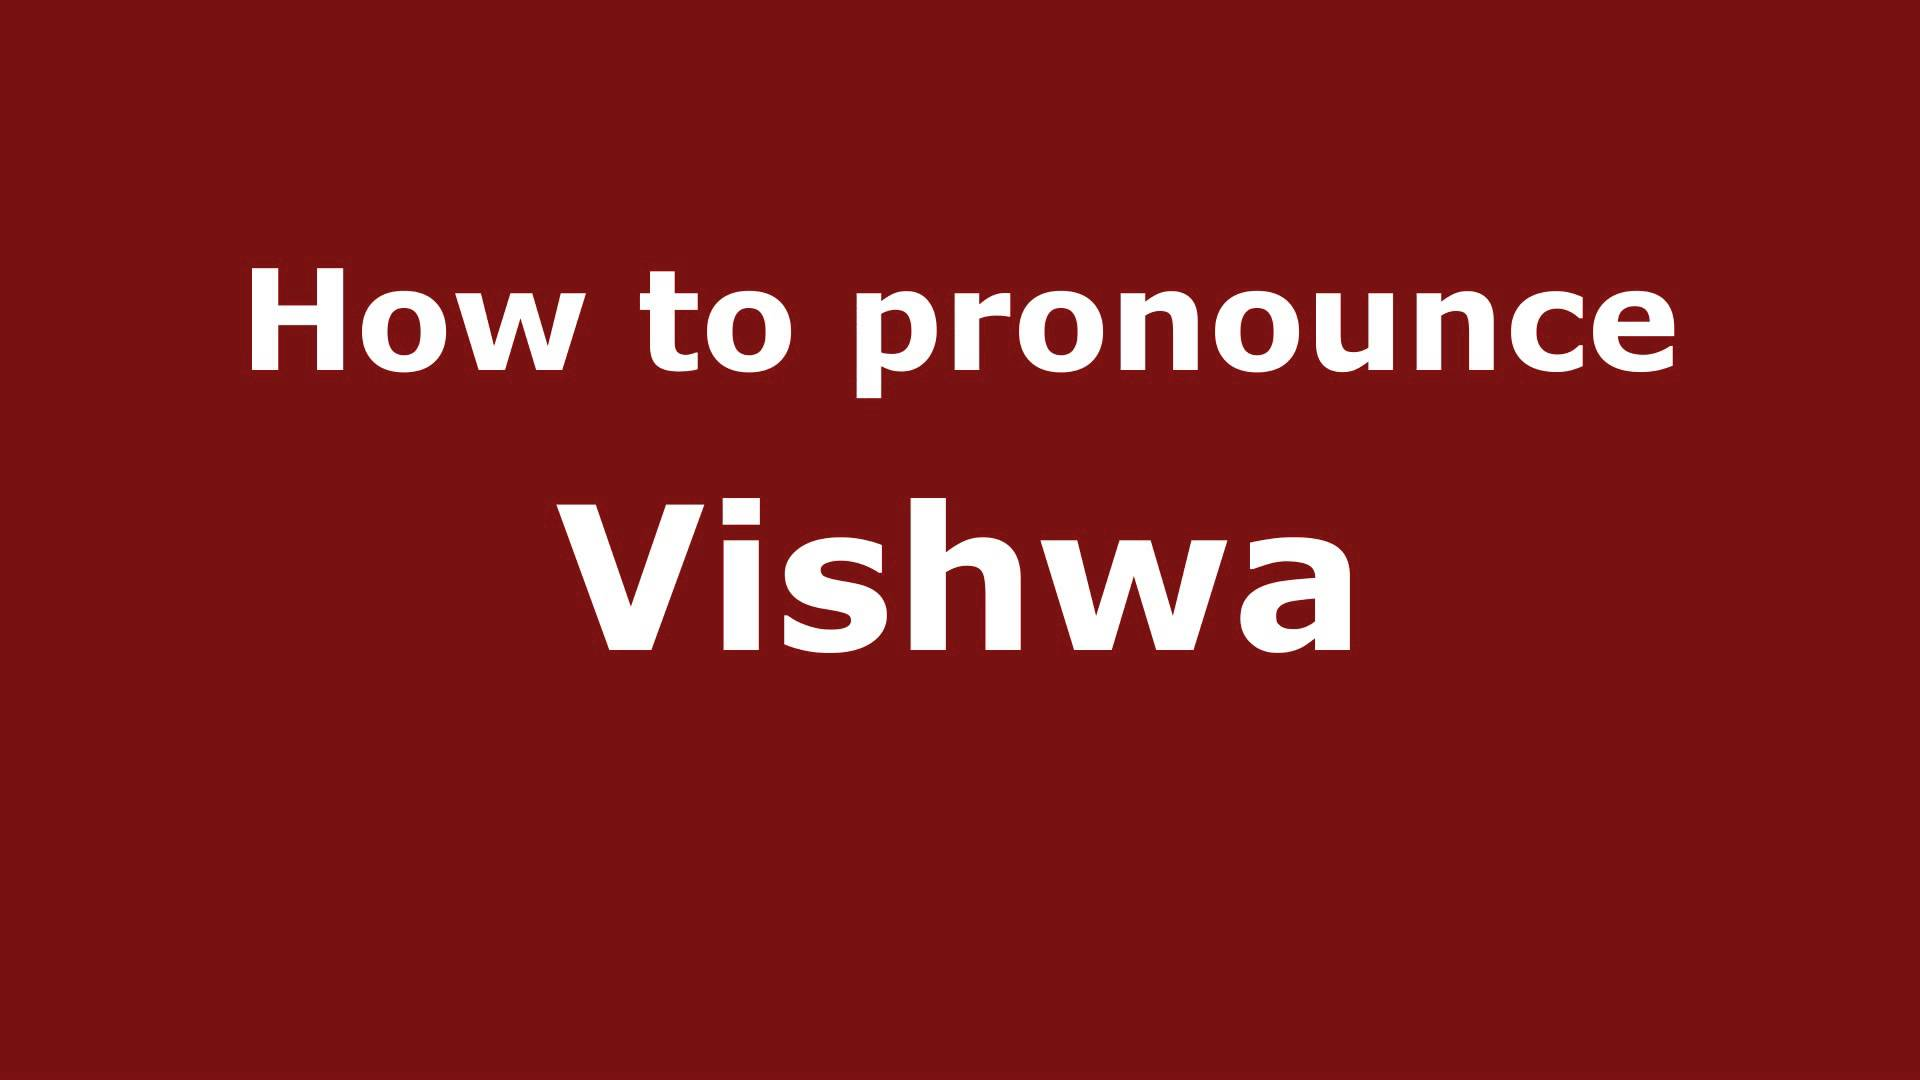 Vishwa Name Wallpaper